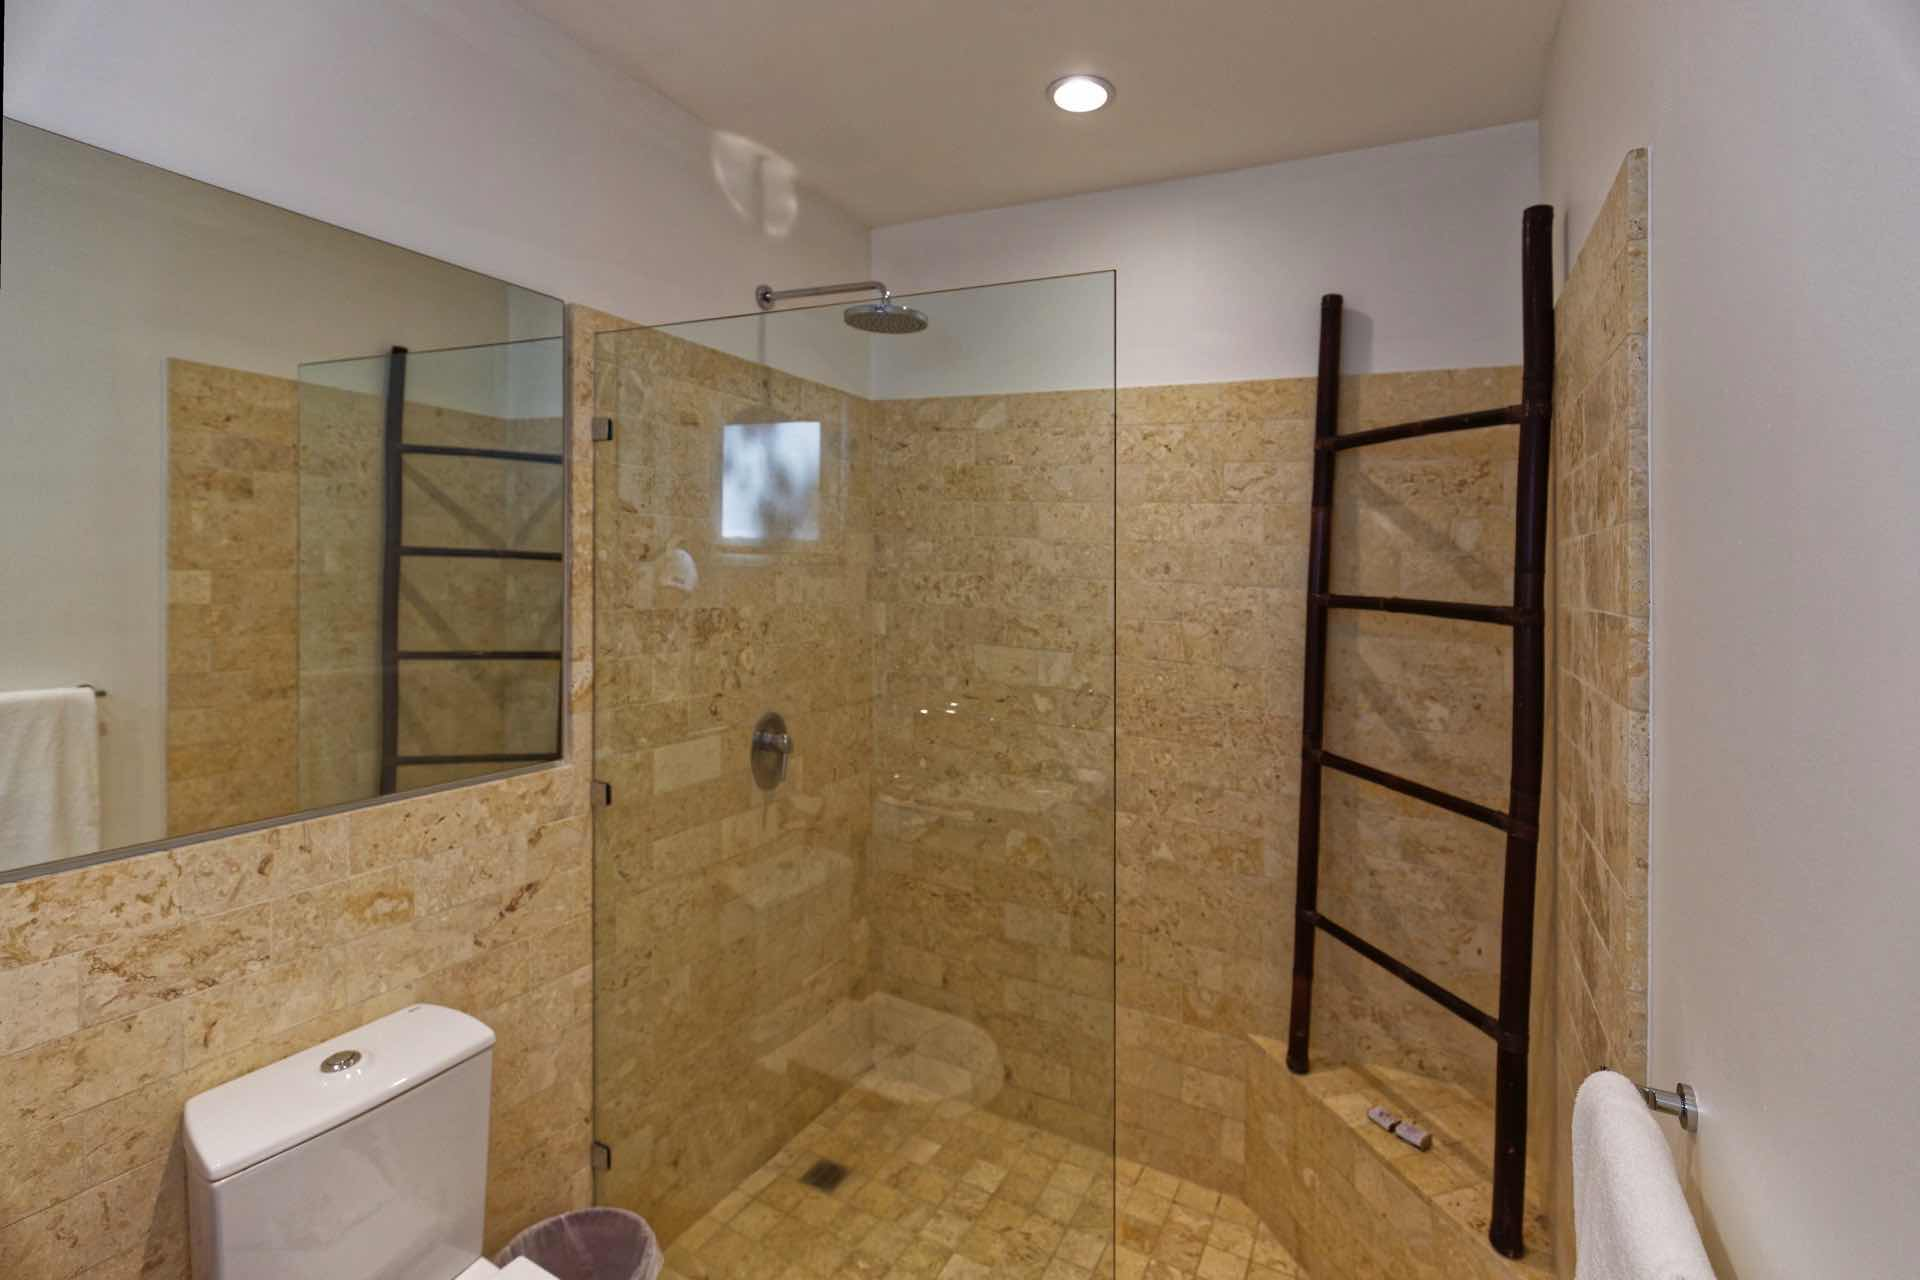 Shower with glass walls